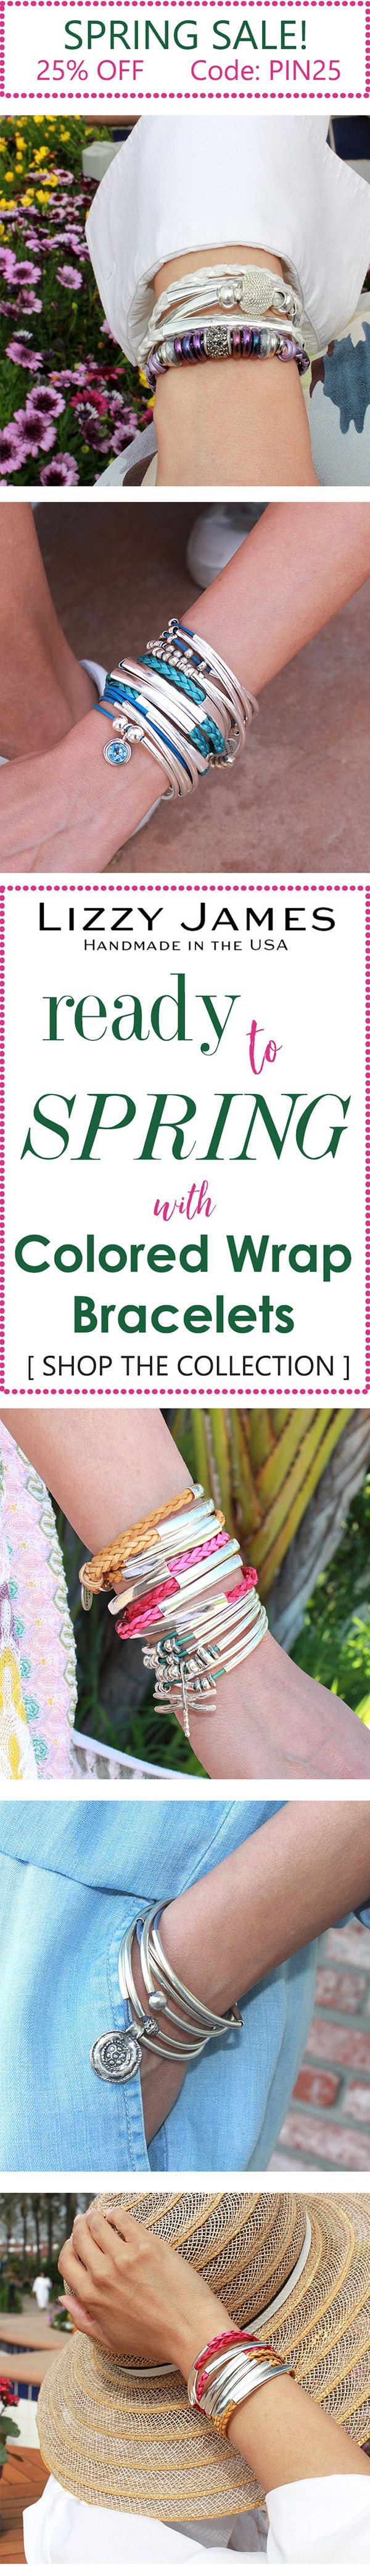 New colored leather & silver wrap bracelets that can be worn as necklaces get 25% OFF + FREE Shipping with coupon code PIN25. Let Lizzy James Jewelry help you stay in style this Spring by adding silver and gold to your wrist...plus a dash of bright leather colors- in cord and braided leather. In addition to braided leather wrap bracelets, we offer necklaces, earrings and sterling silver rings. Our designs fit all wrist sizes from petite to plus size. Proud to be made in the USA!  #lizzyjames